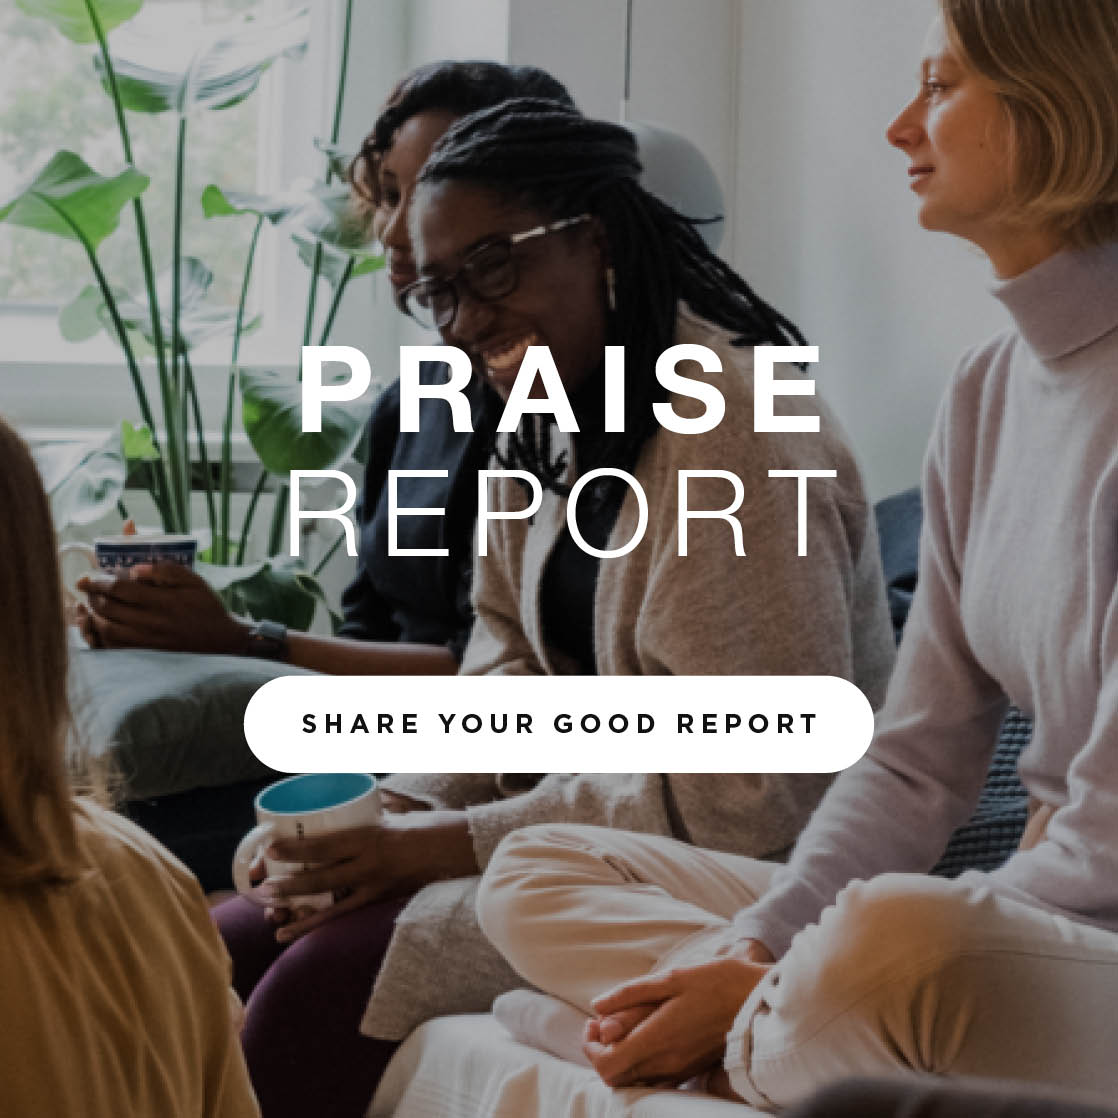 Praise Report – Share your good report